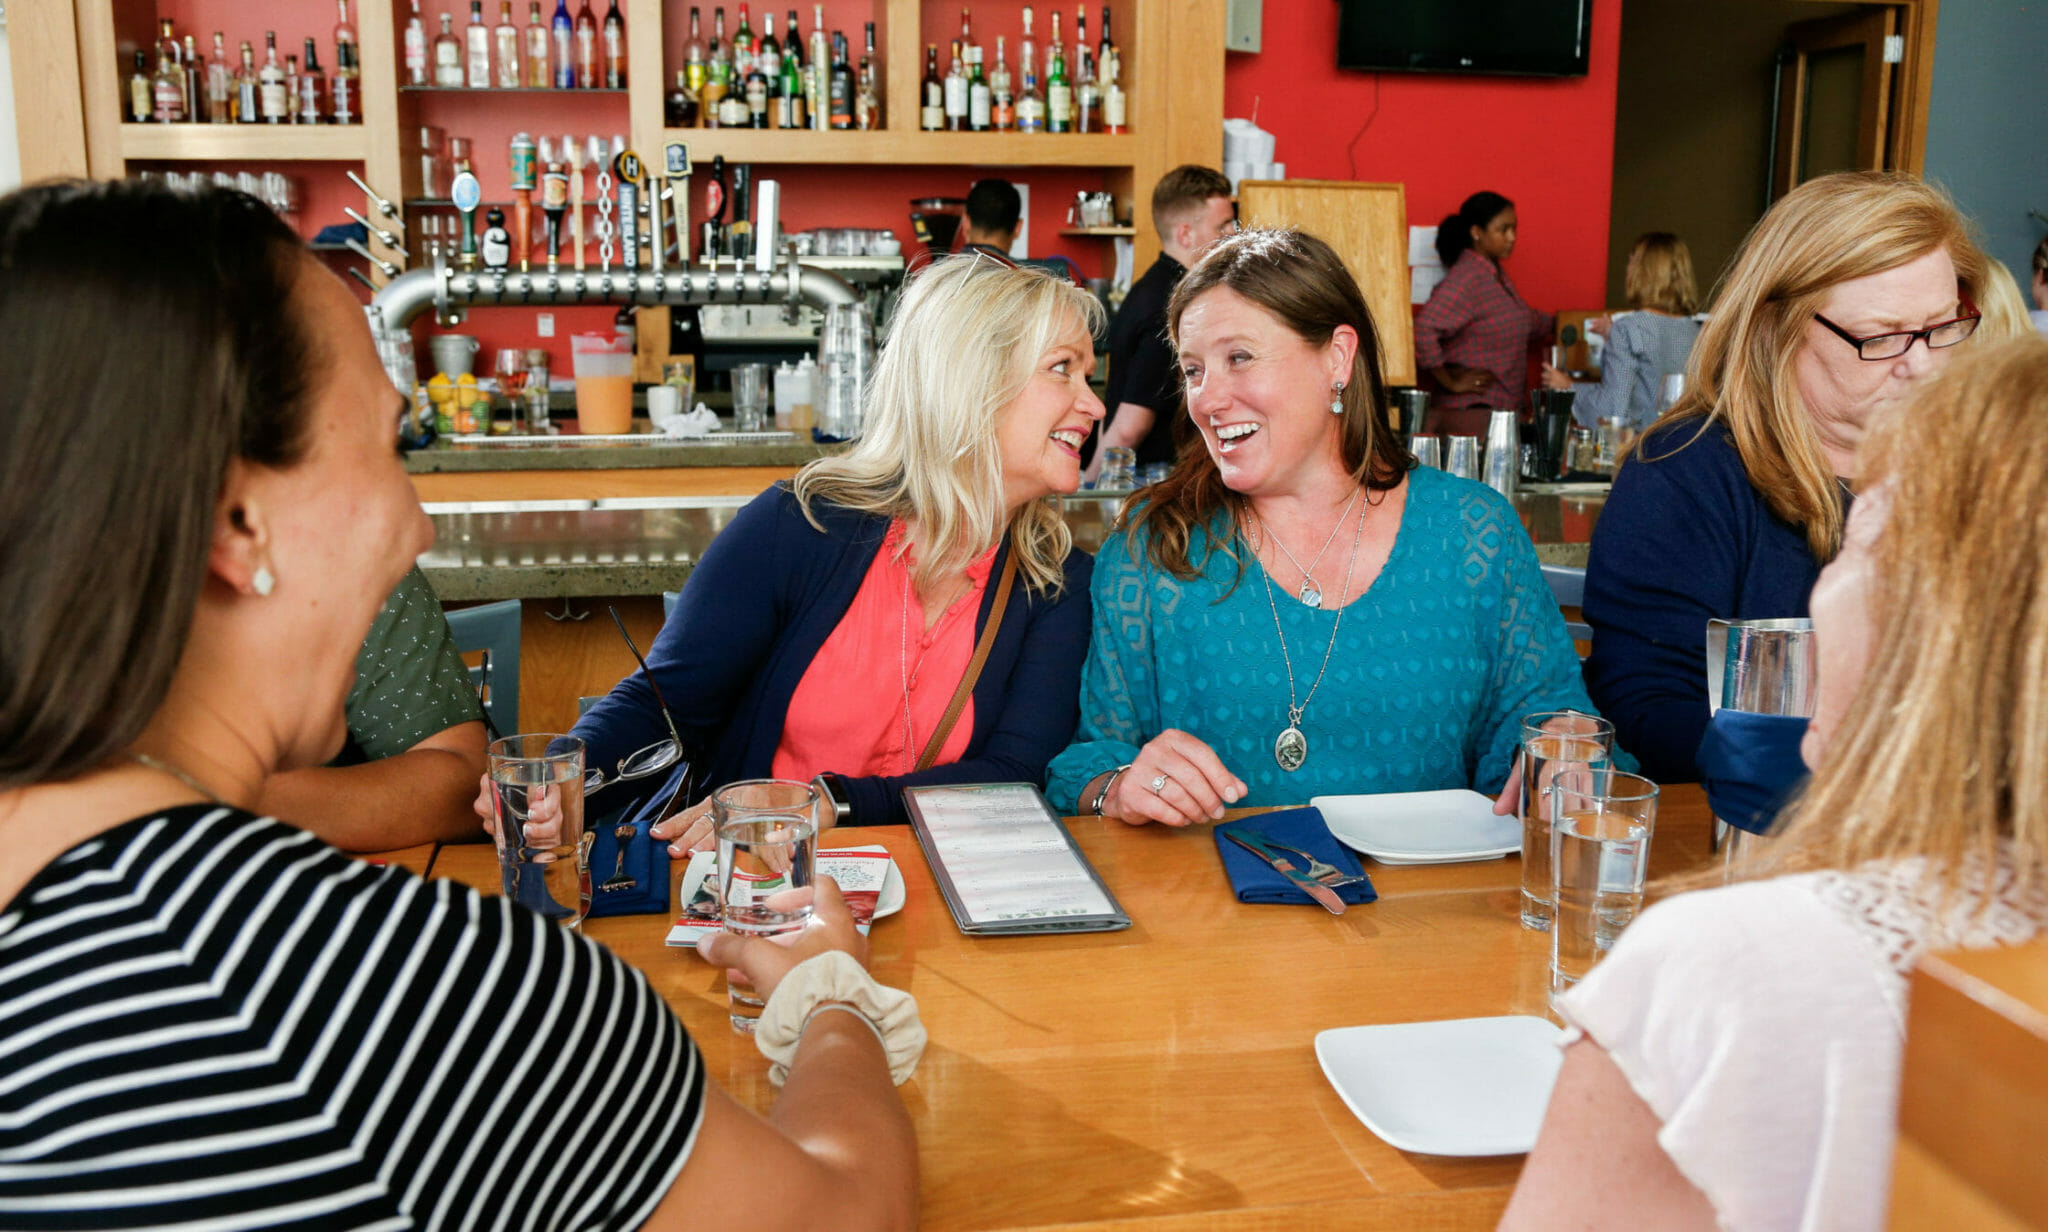 Guests laughing at restaurant dining table